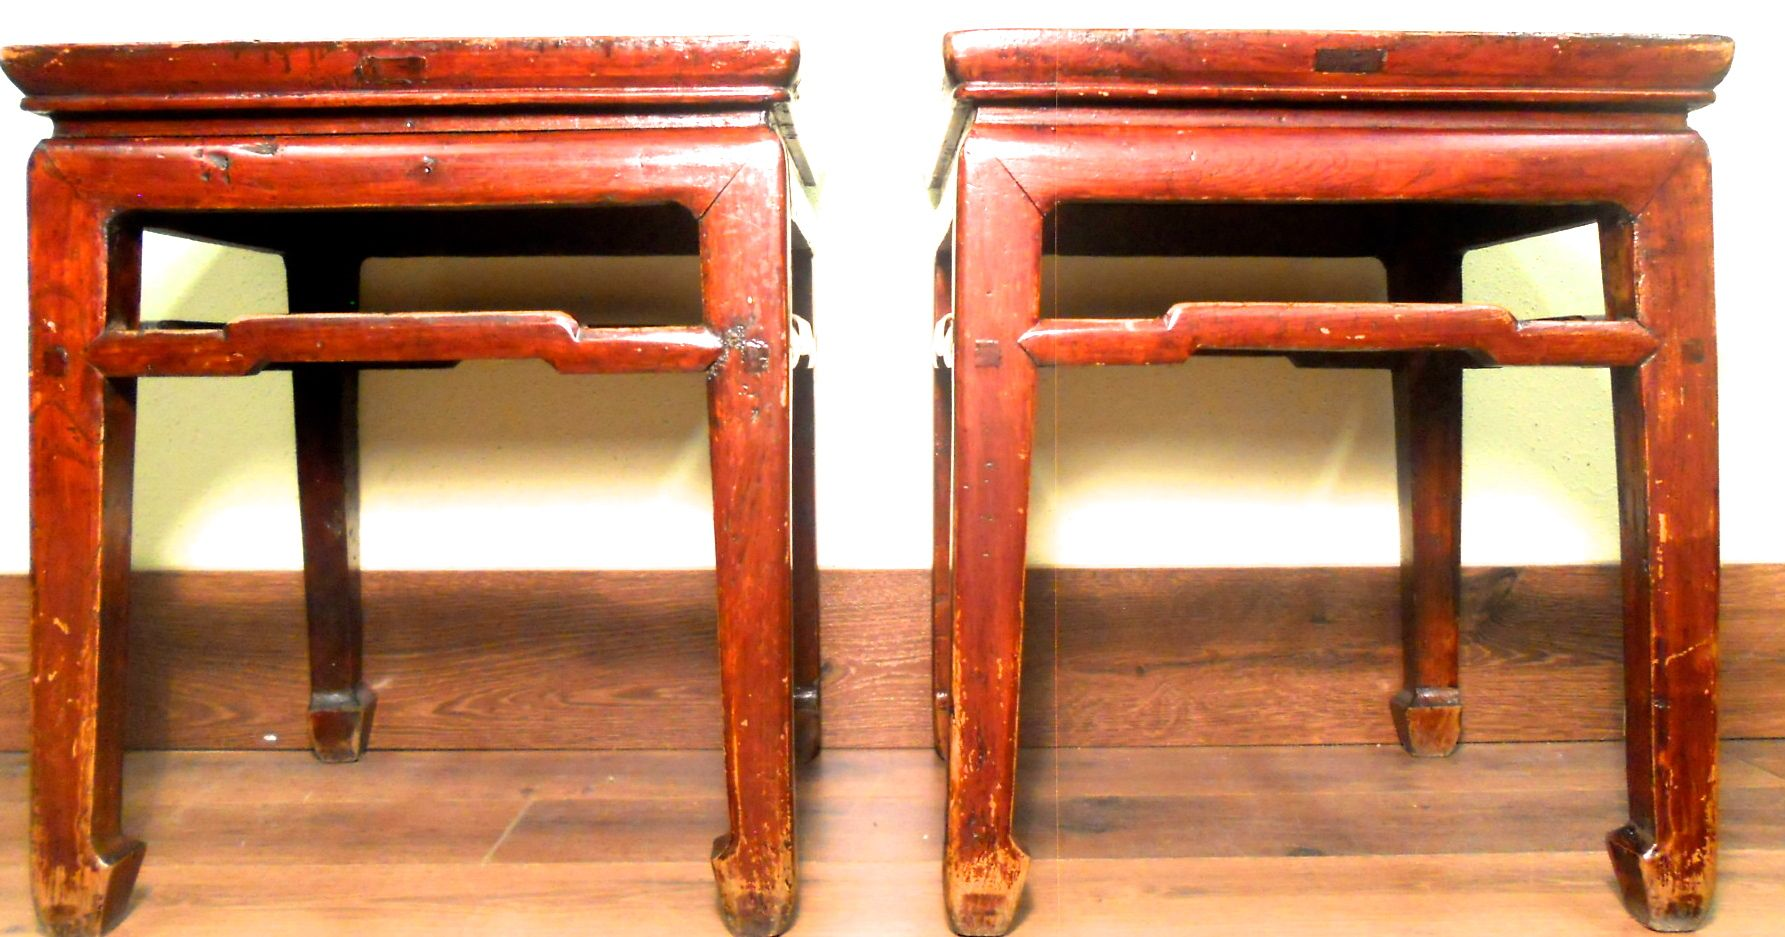 This pair of authentic Antique Chinese Ming Meditation Bench is handcrafted in Ming style with traditional  horse-hoof  legs and straight lines.  sc 1 st  Antiques.com : chinese stools wood - islam-shia.org